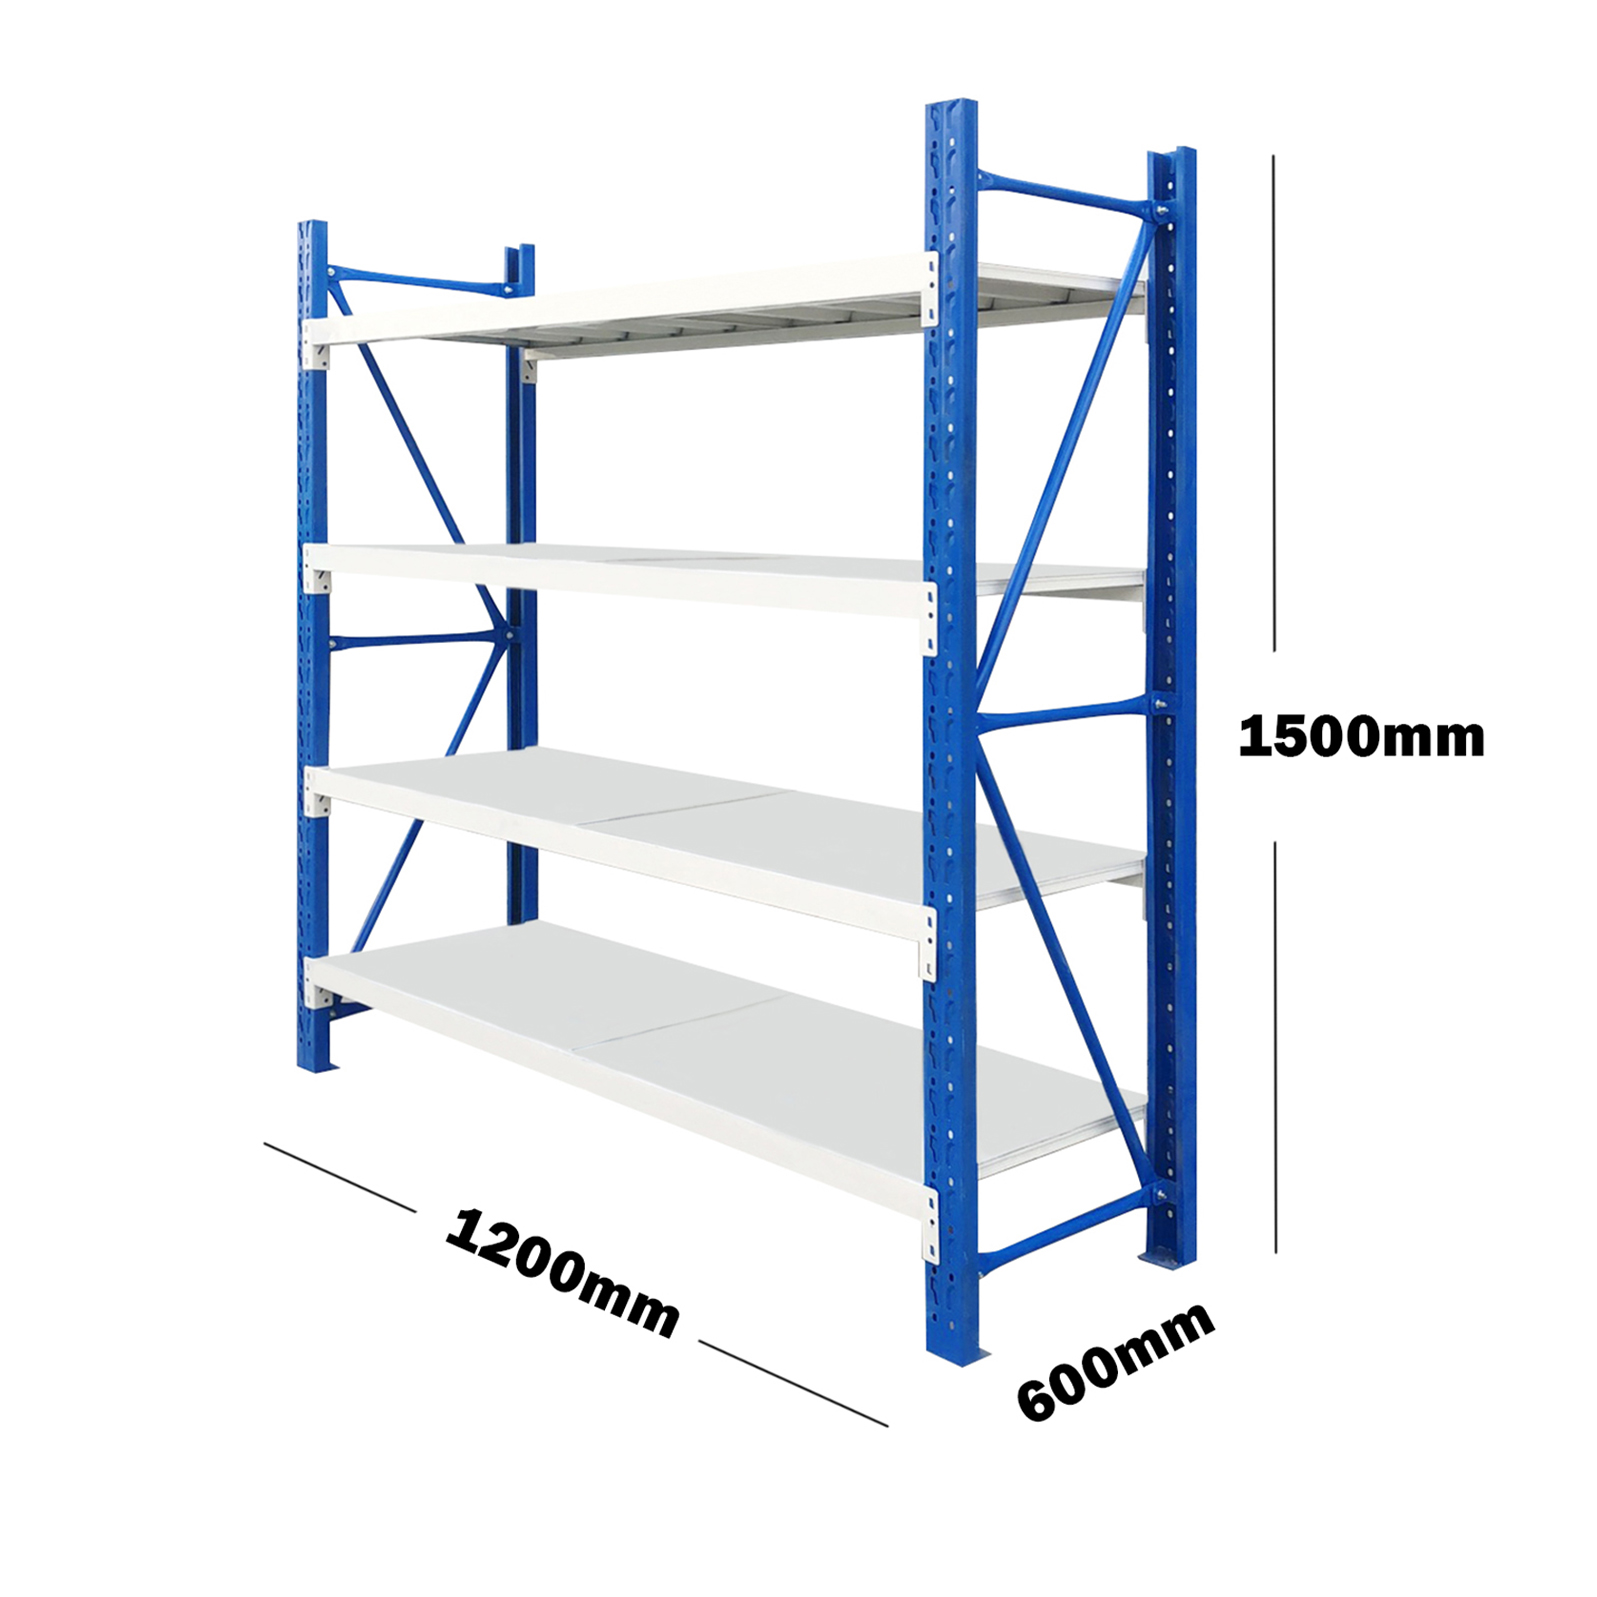 1.2M(L) x 1.5M(H) x 0.6M(D) Shelves Racking Metal Steel Blue & Grey 1215BG